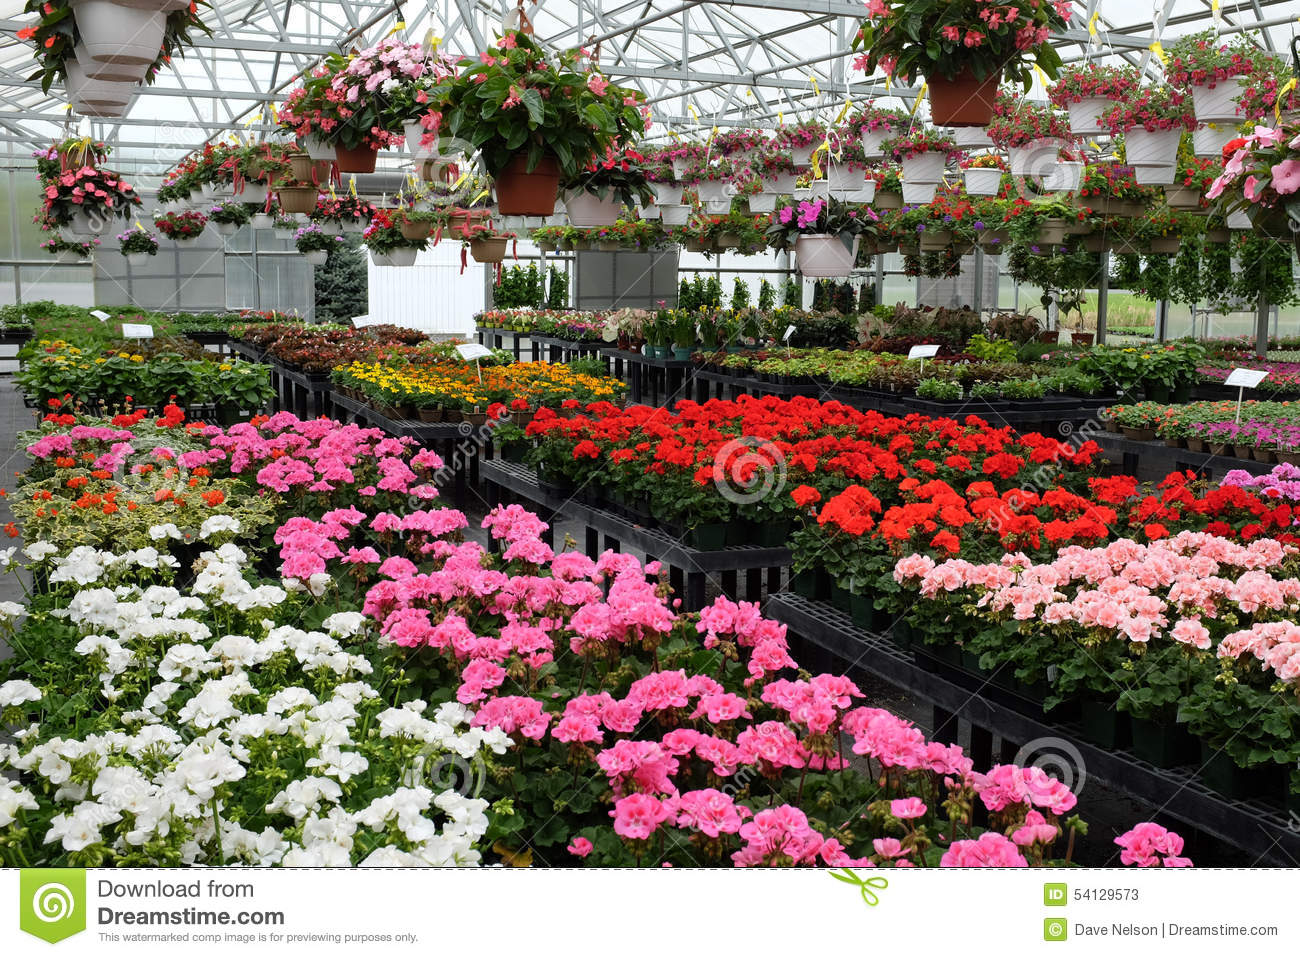 Hanging Baskets Of Flowers For Sale In Greenhouse Stock Photo.